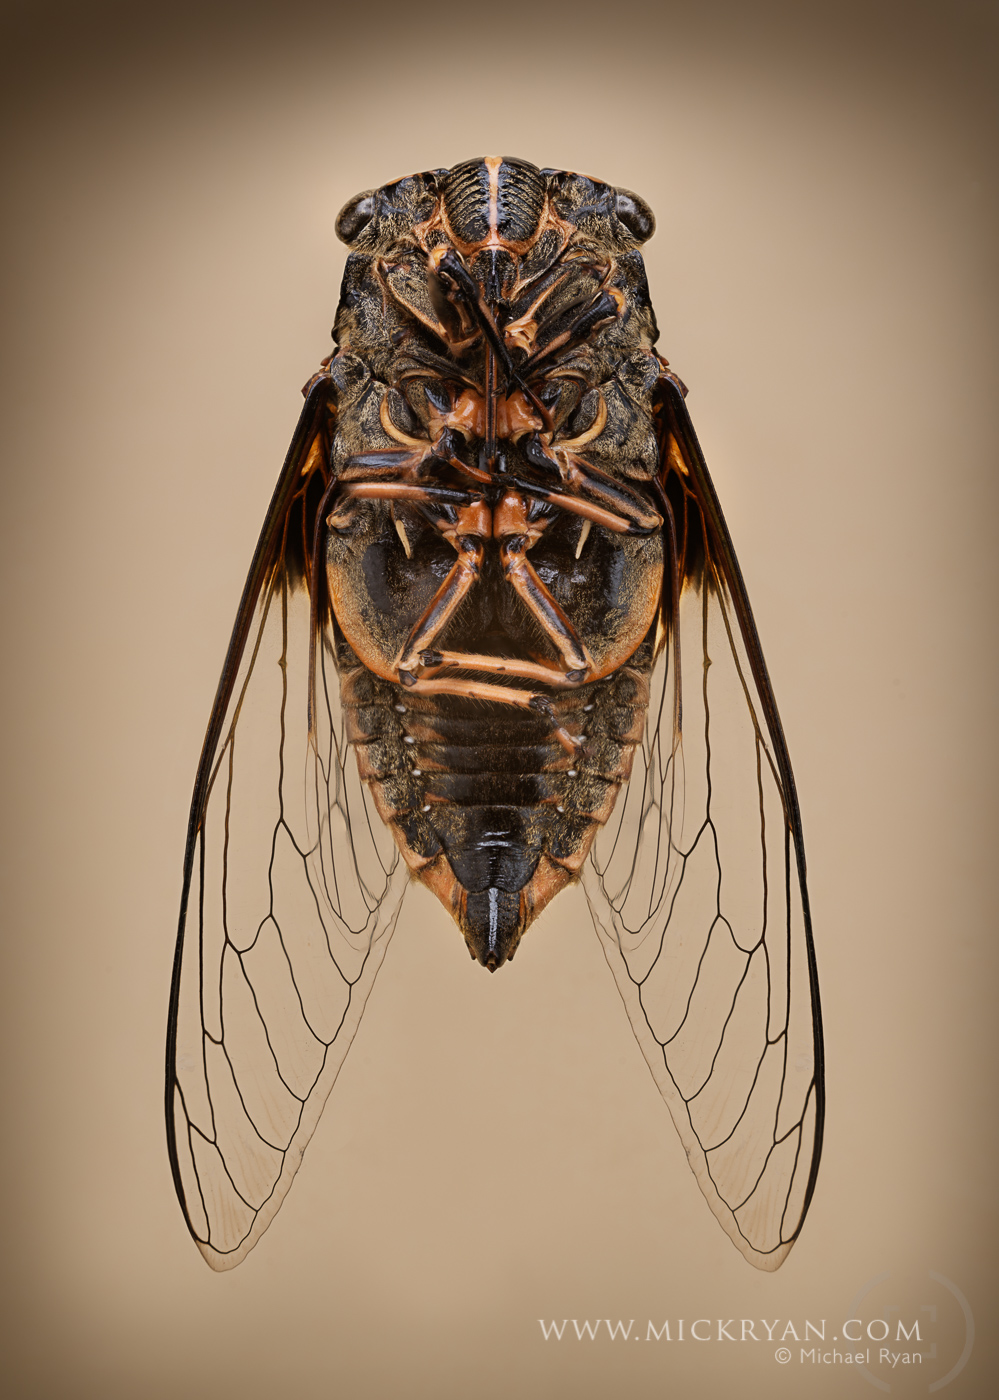 Cicada wings spread-3216-Edit.jpg